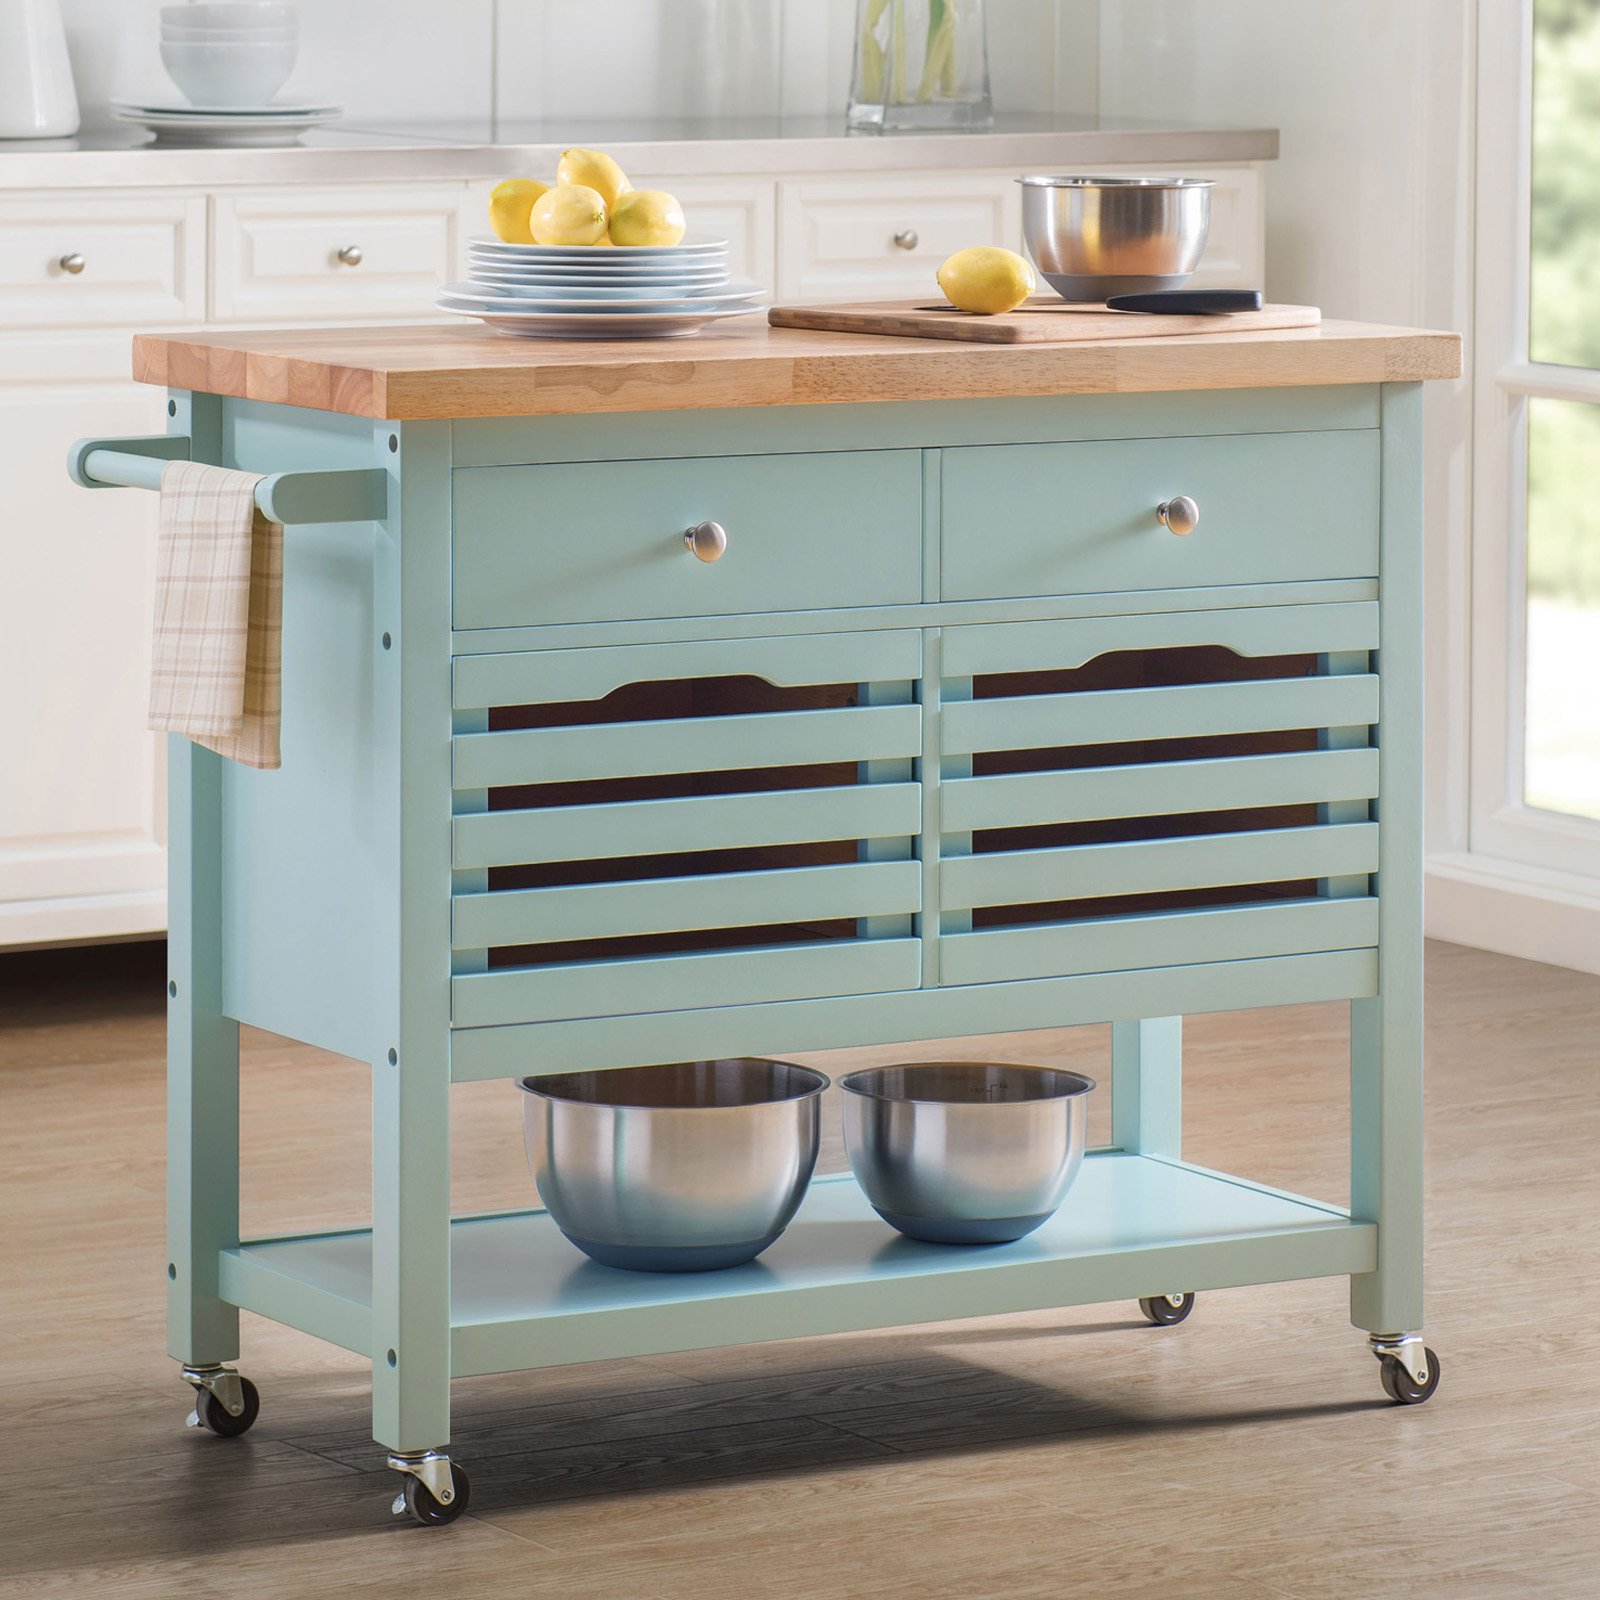 Sunjoy New Jaden Portable Kitchen Island Cart - Walmart.com